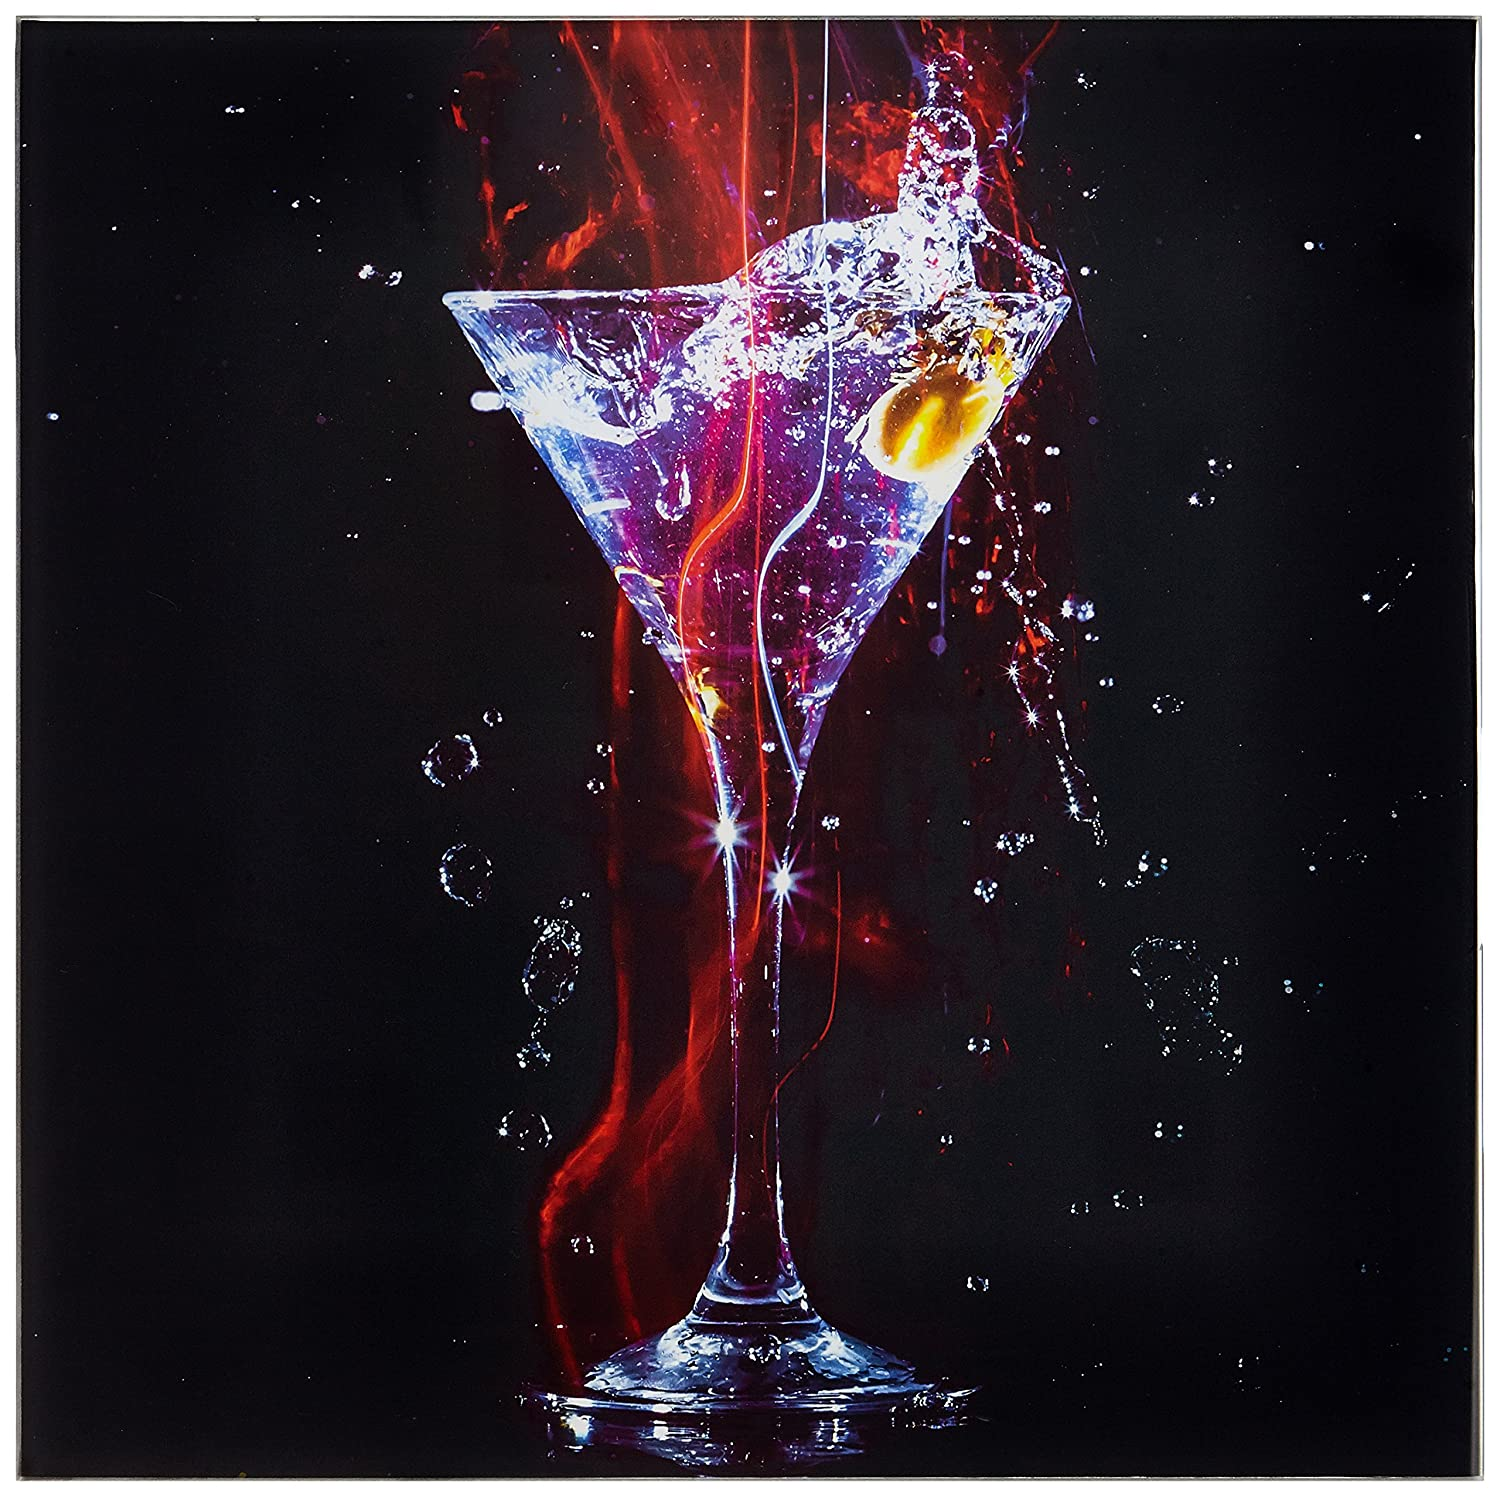 Pro-Art-immagini gamma gla1403  a Cocktail on Black I vetro Art, multicolore, 30  x 30  x 1,30  cm 30 x 30 x 1 30 cm Pro-Art-Bilderpalette (PRPQU) gla1403a